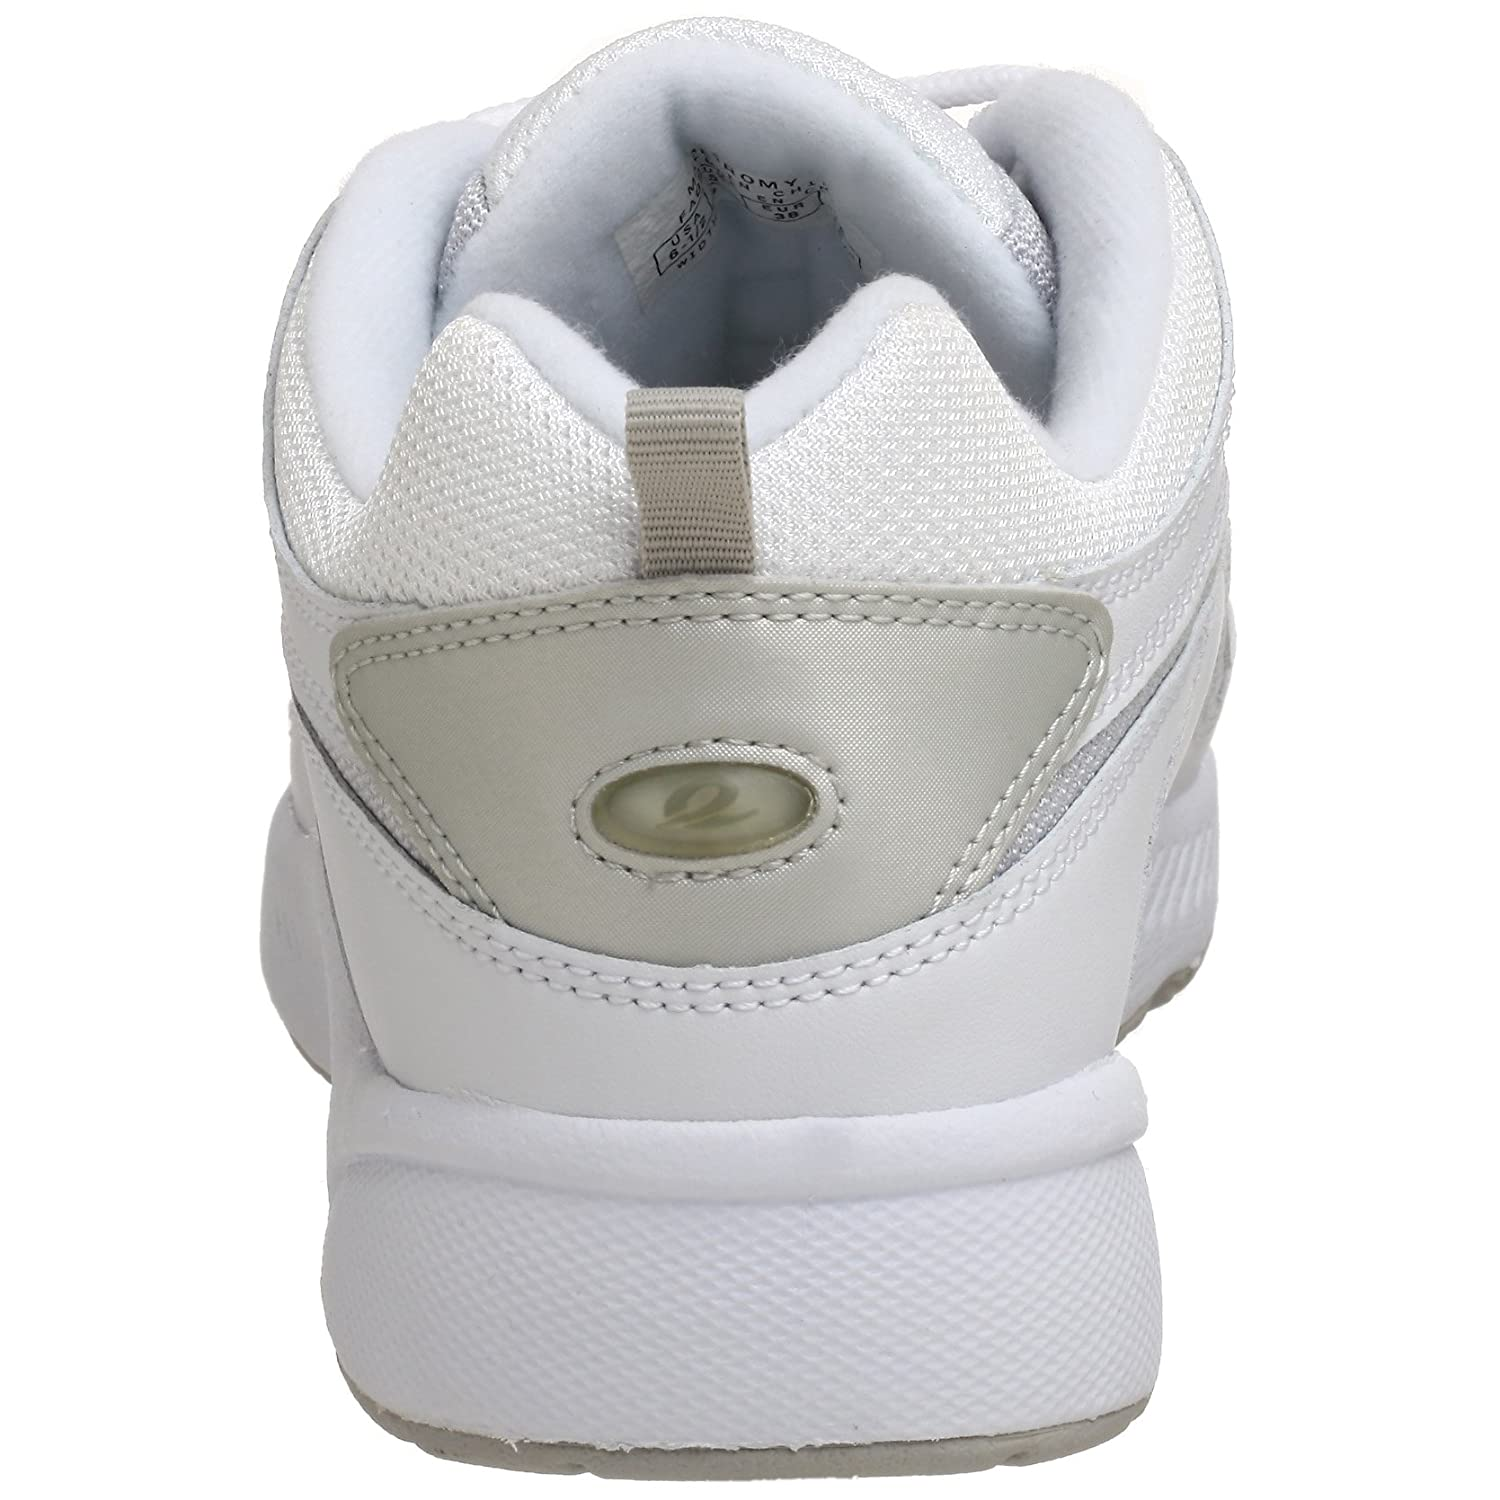 Easy Spirit 6.5 Women's Romy Sneaker B002WN6LAQ 6.5 Spirit N (AA)|White/Light Grey Leather 2adfa2